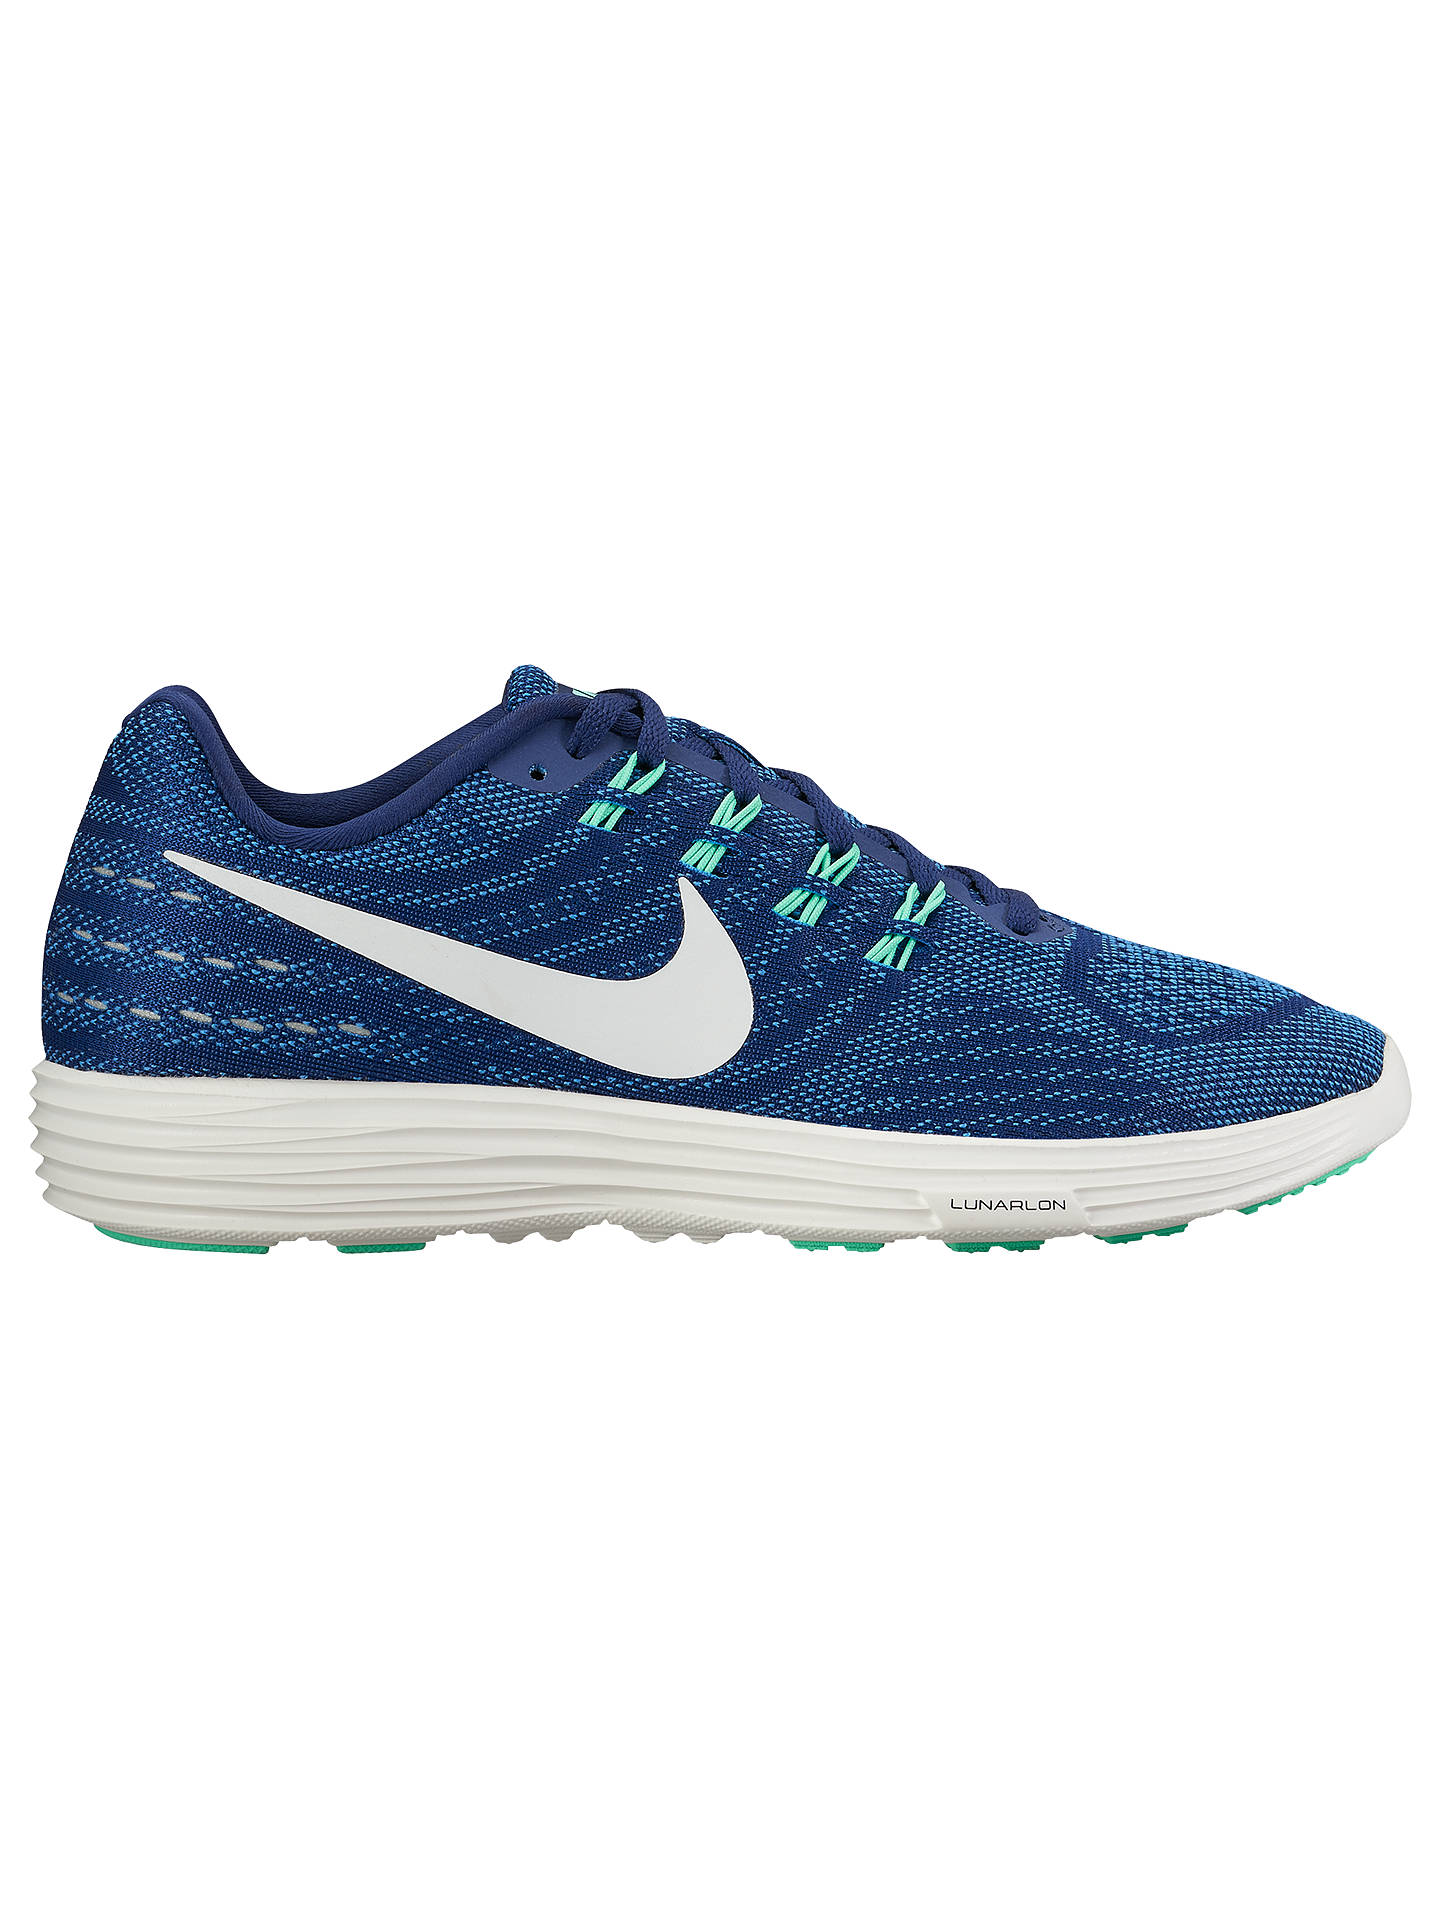 the latest faa28 48b13 Buy Nike LunarTempo 2 Women s Running Shoes, Blue White, 4 Online at  johnlewis ...